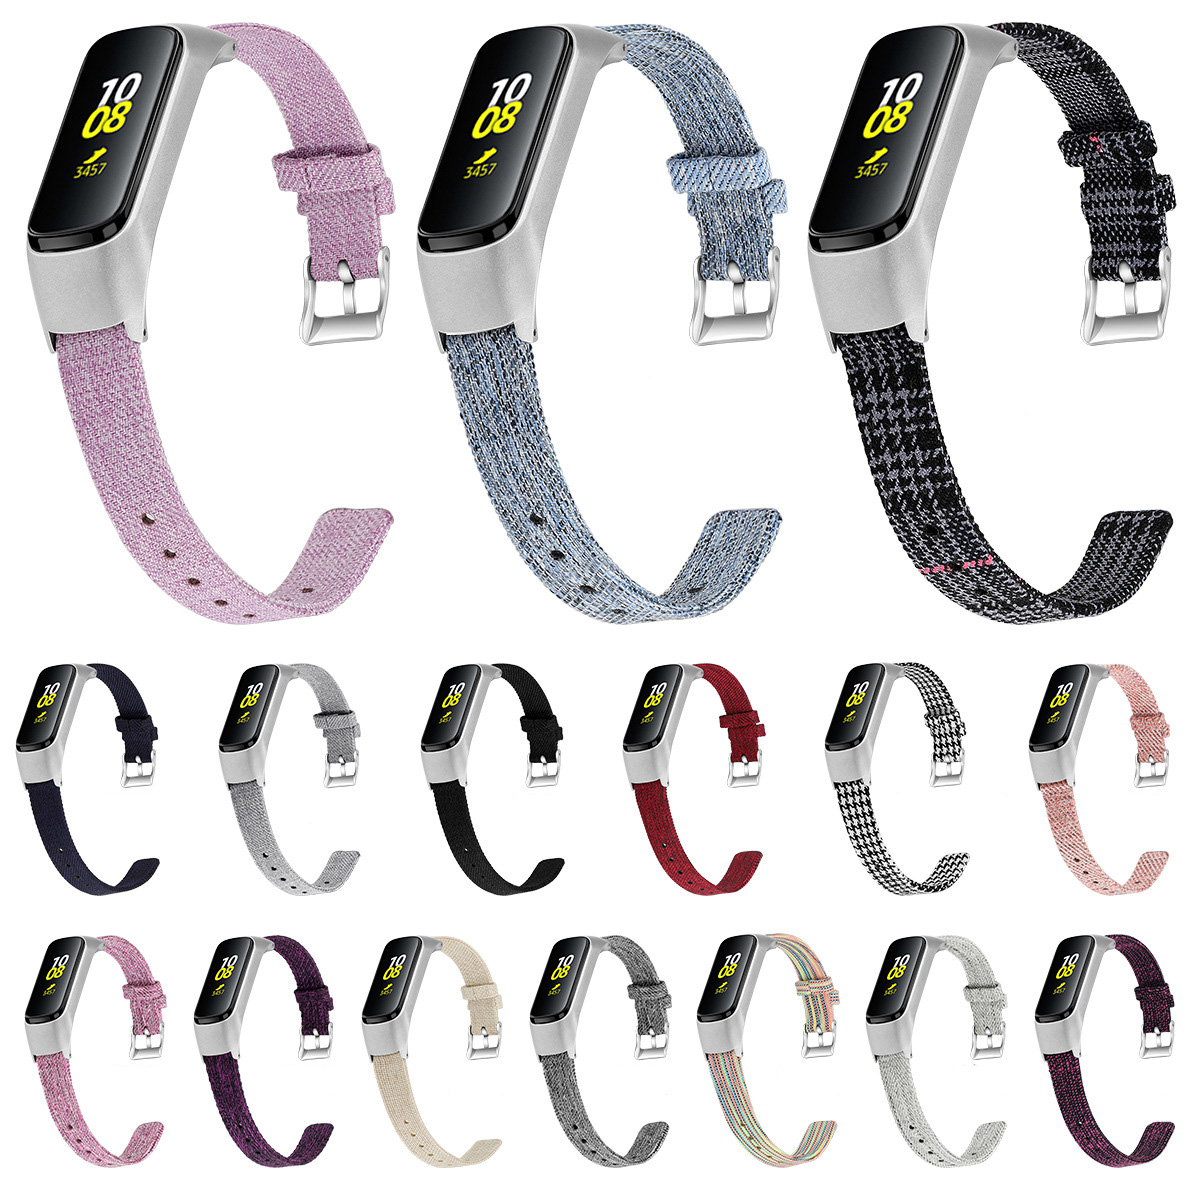 For Xiaomi Mi Band 4 Bracelet Soft Canvas Material Stainless Steel Frame Replaceable Watch Band For Mi Band 3 Strap